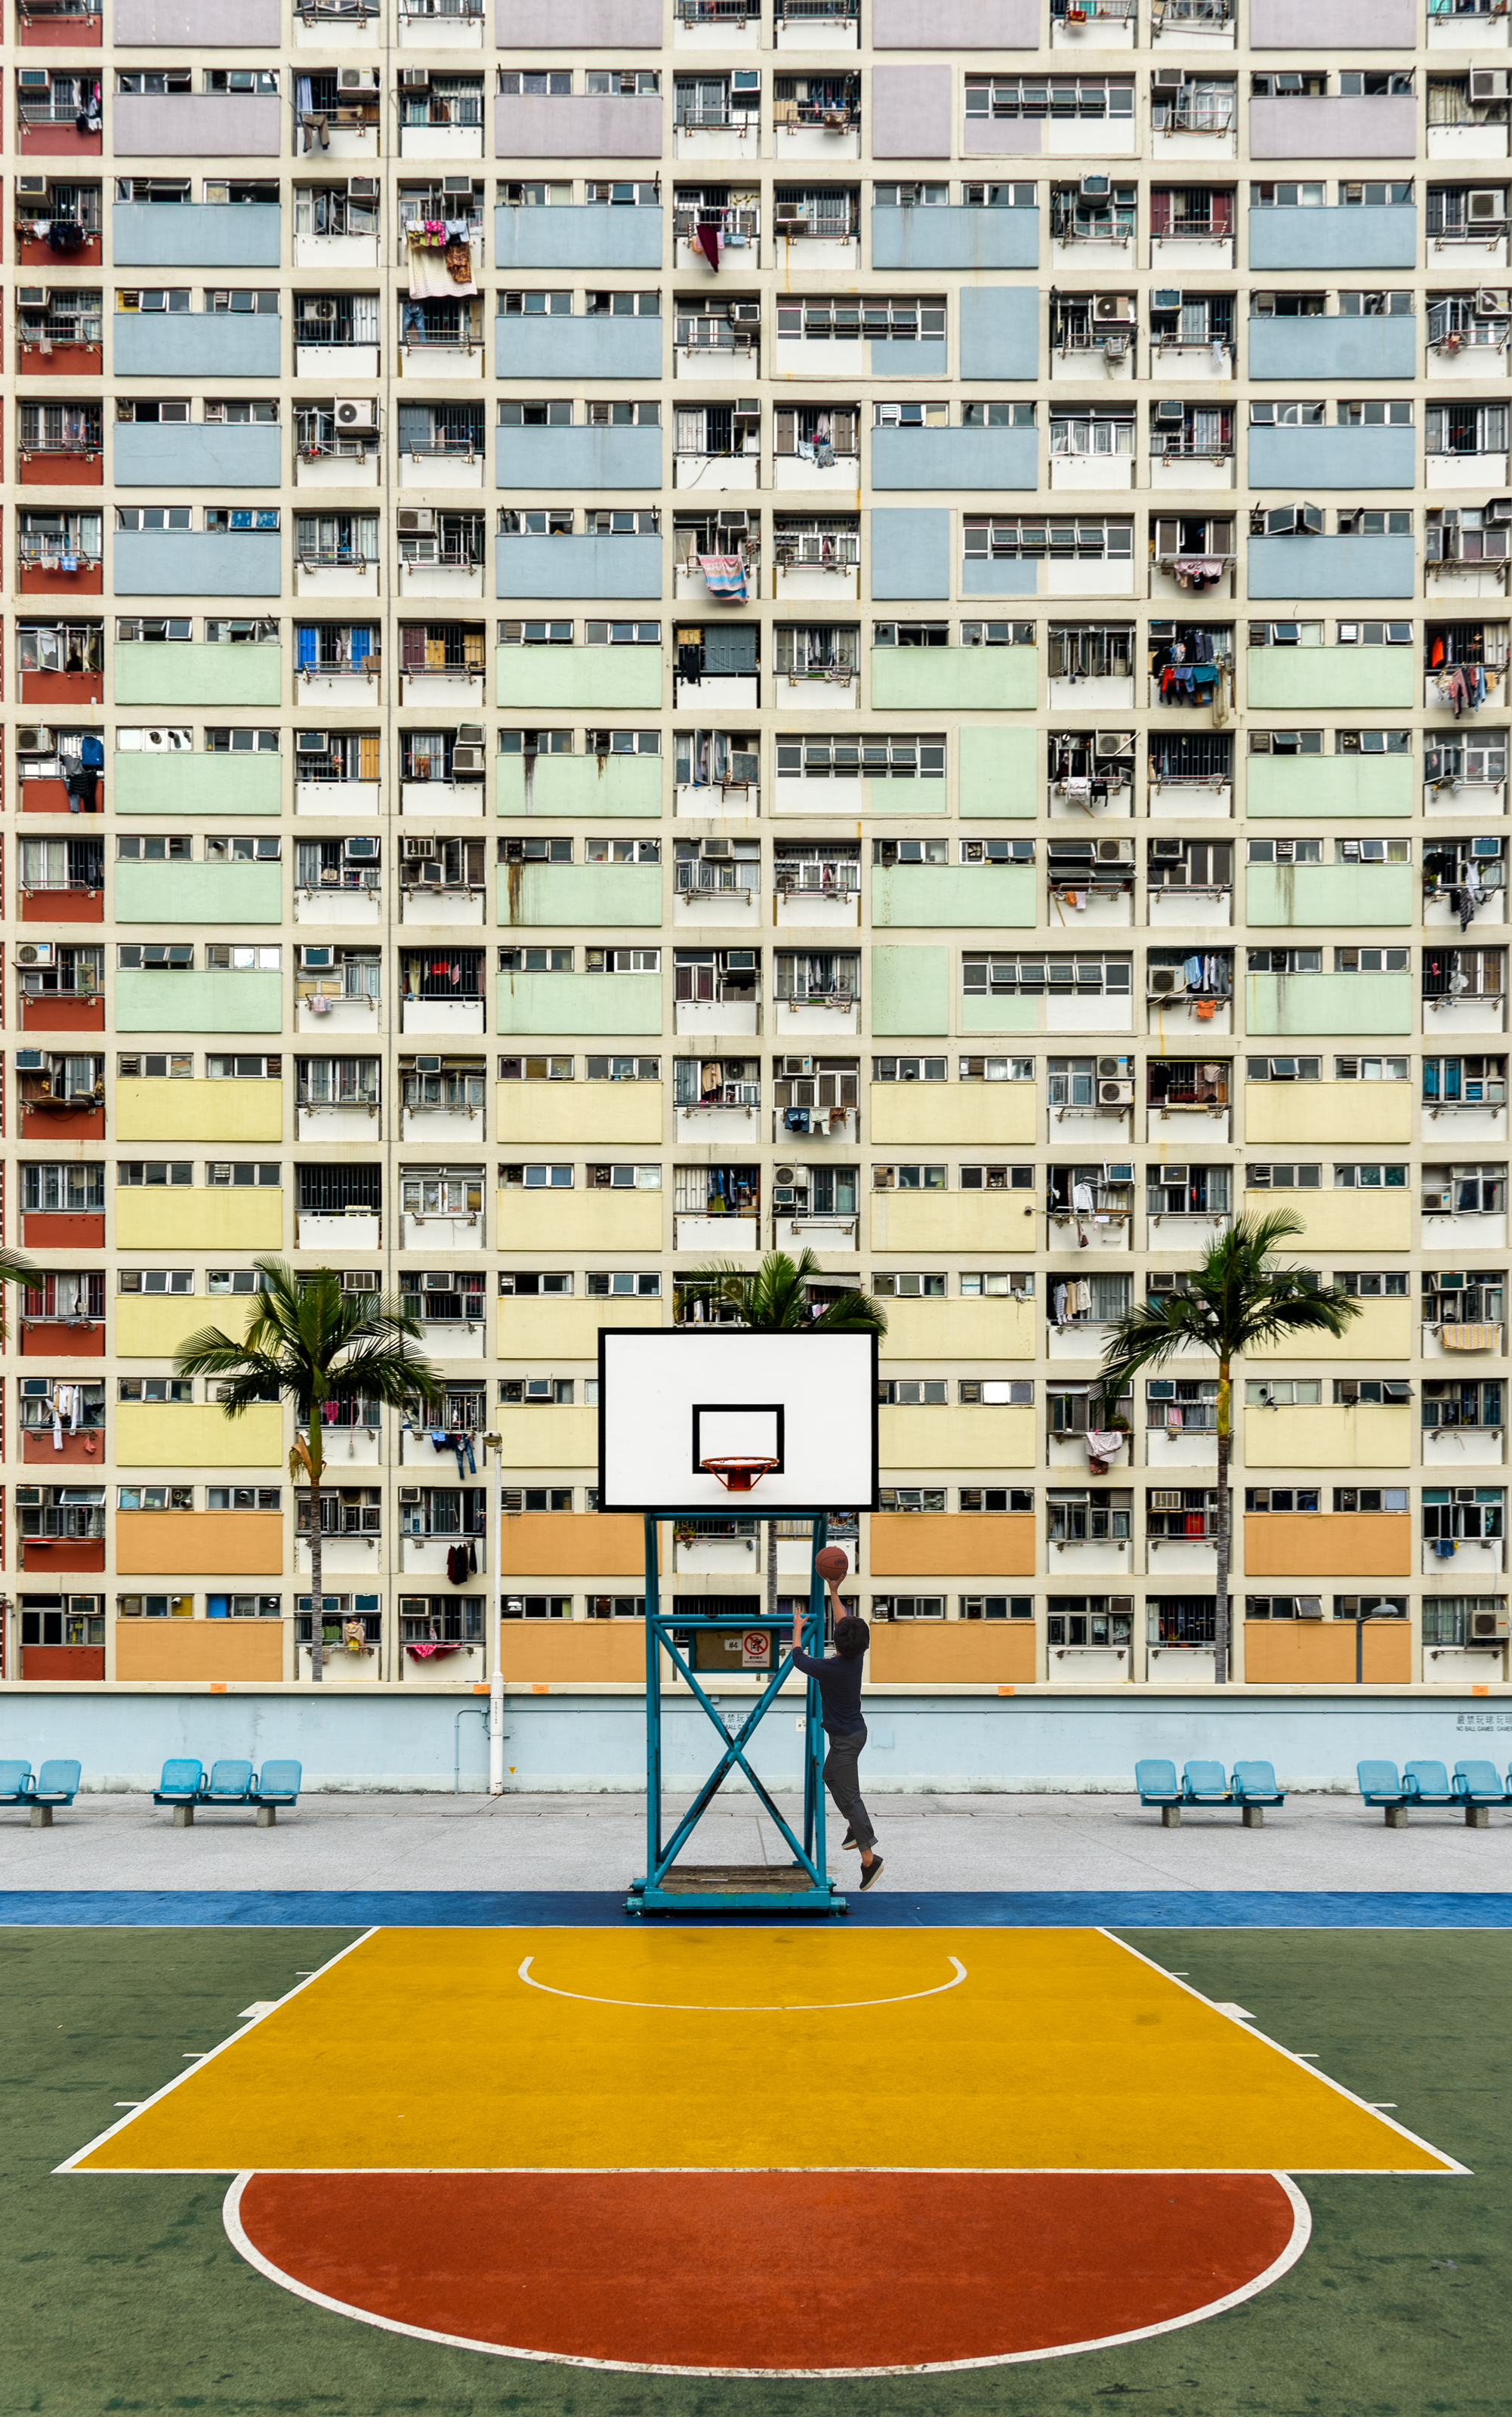 Choi Hung Estate Basketball